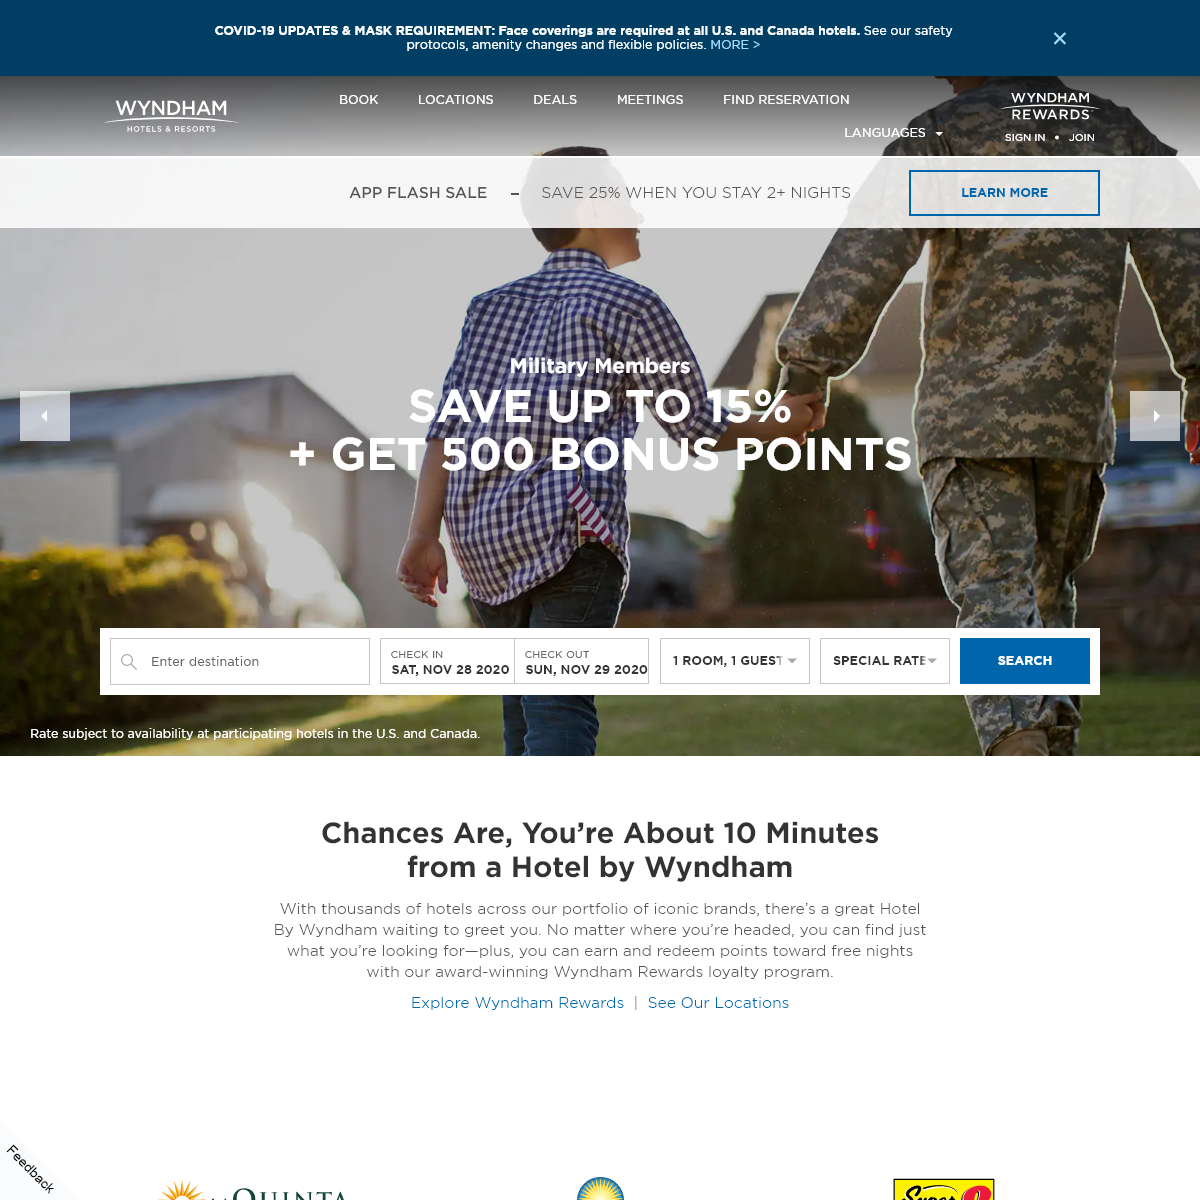 Wyndham Hotels & Resorts - Search for Hotel Room Rates, Deals, and Getaways